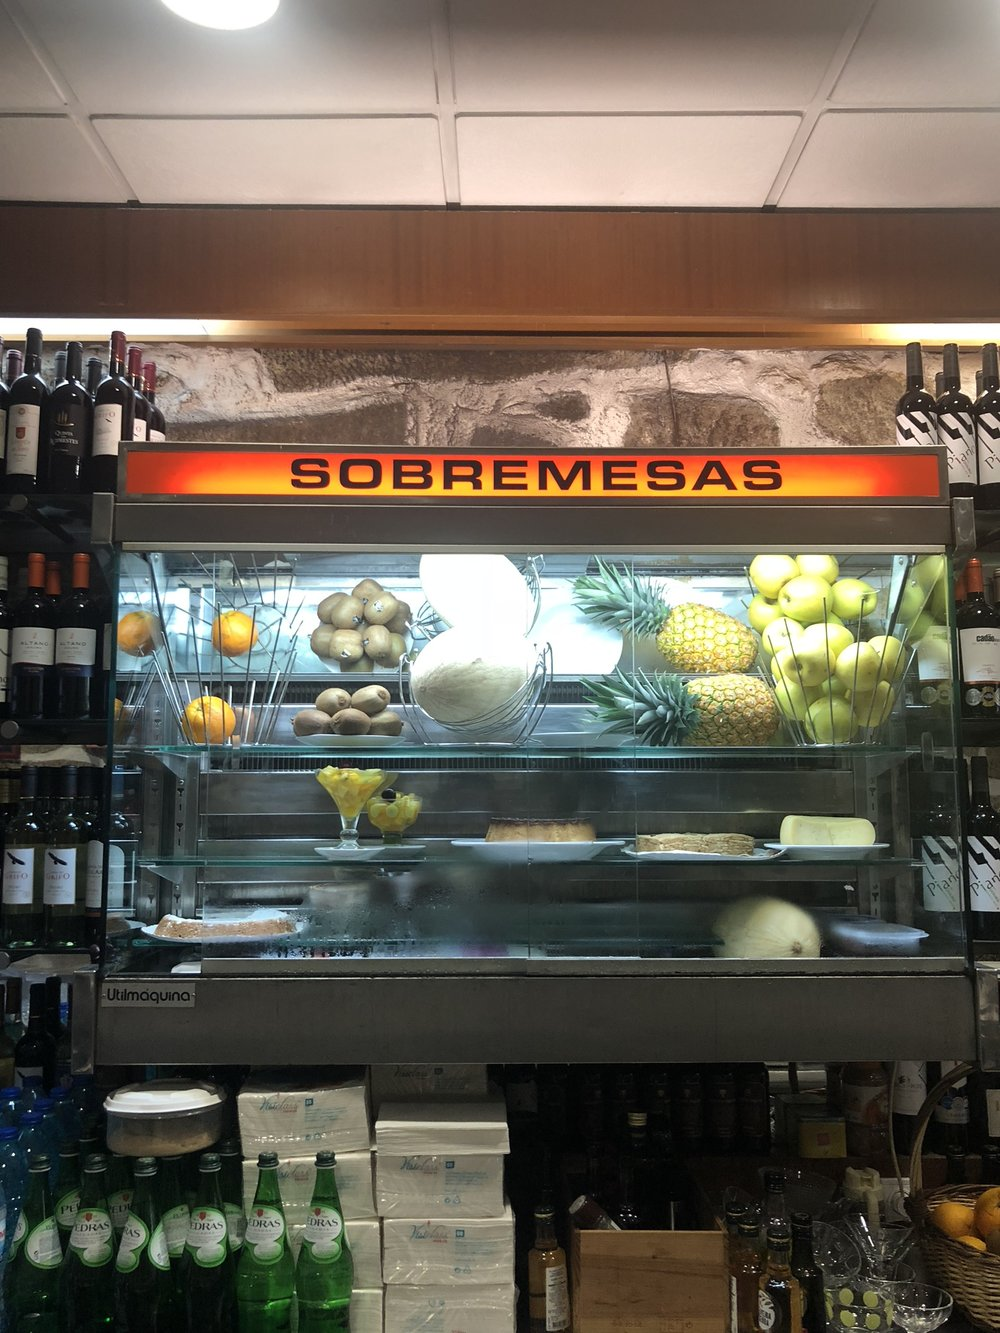 / - Barcelos-Portugal: One day I' ll bring this fridge home.